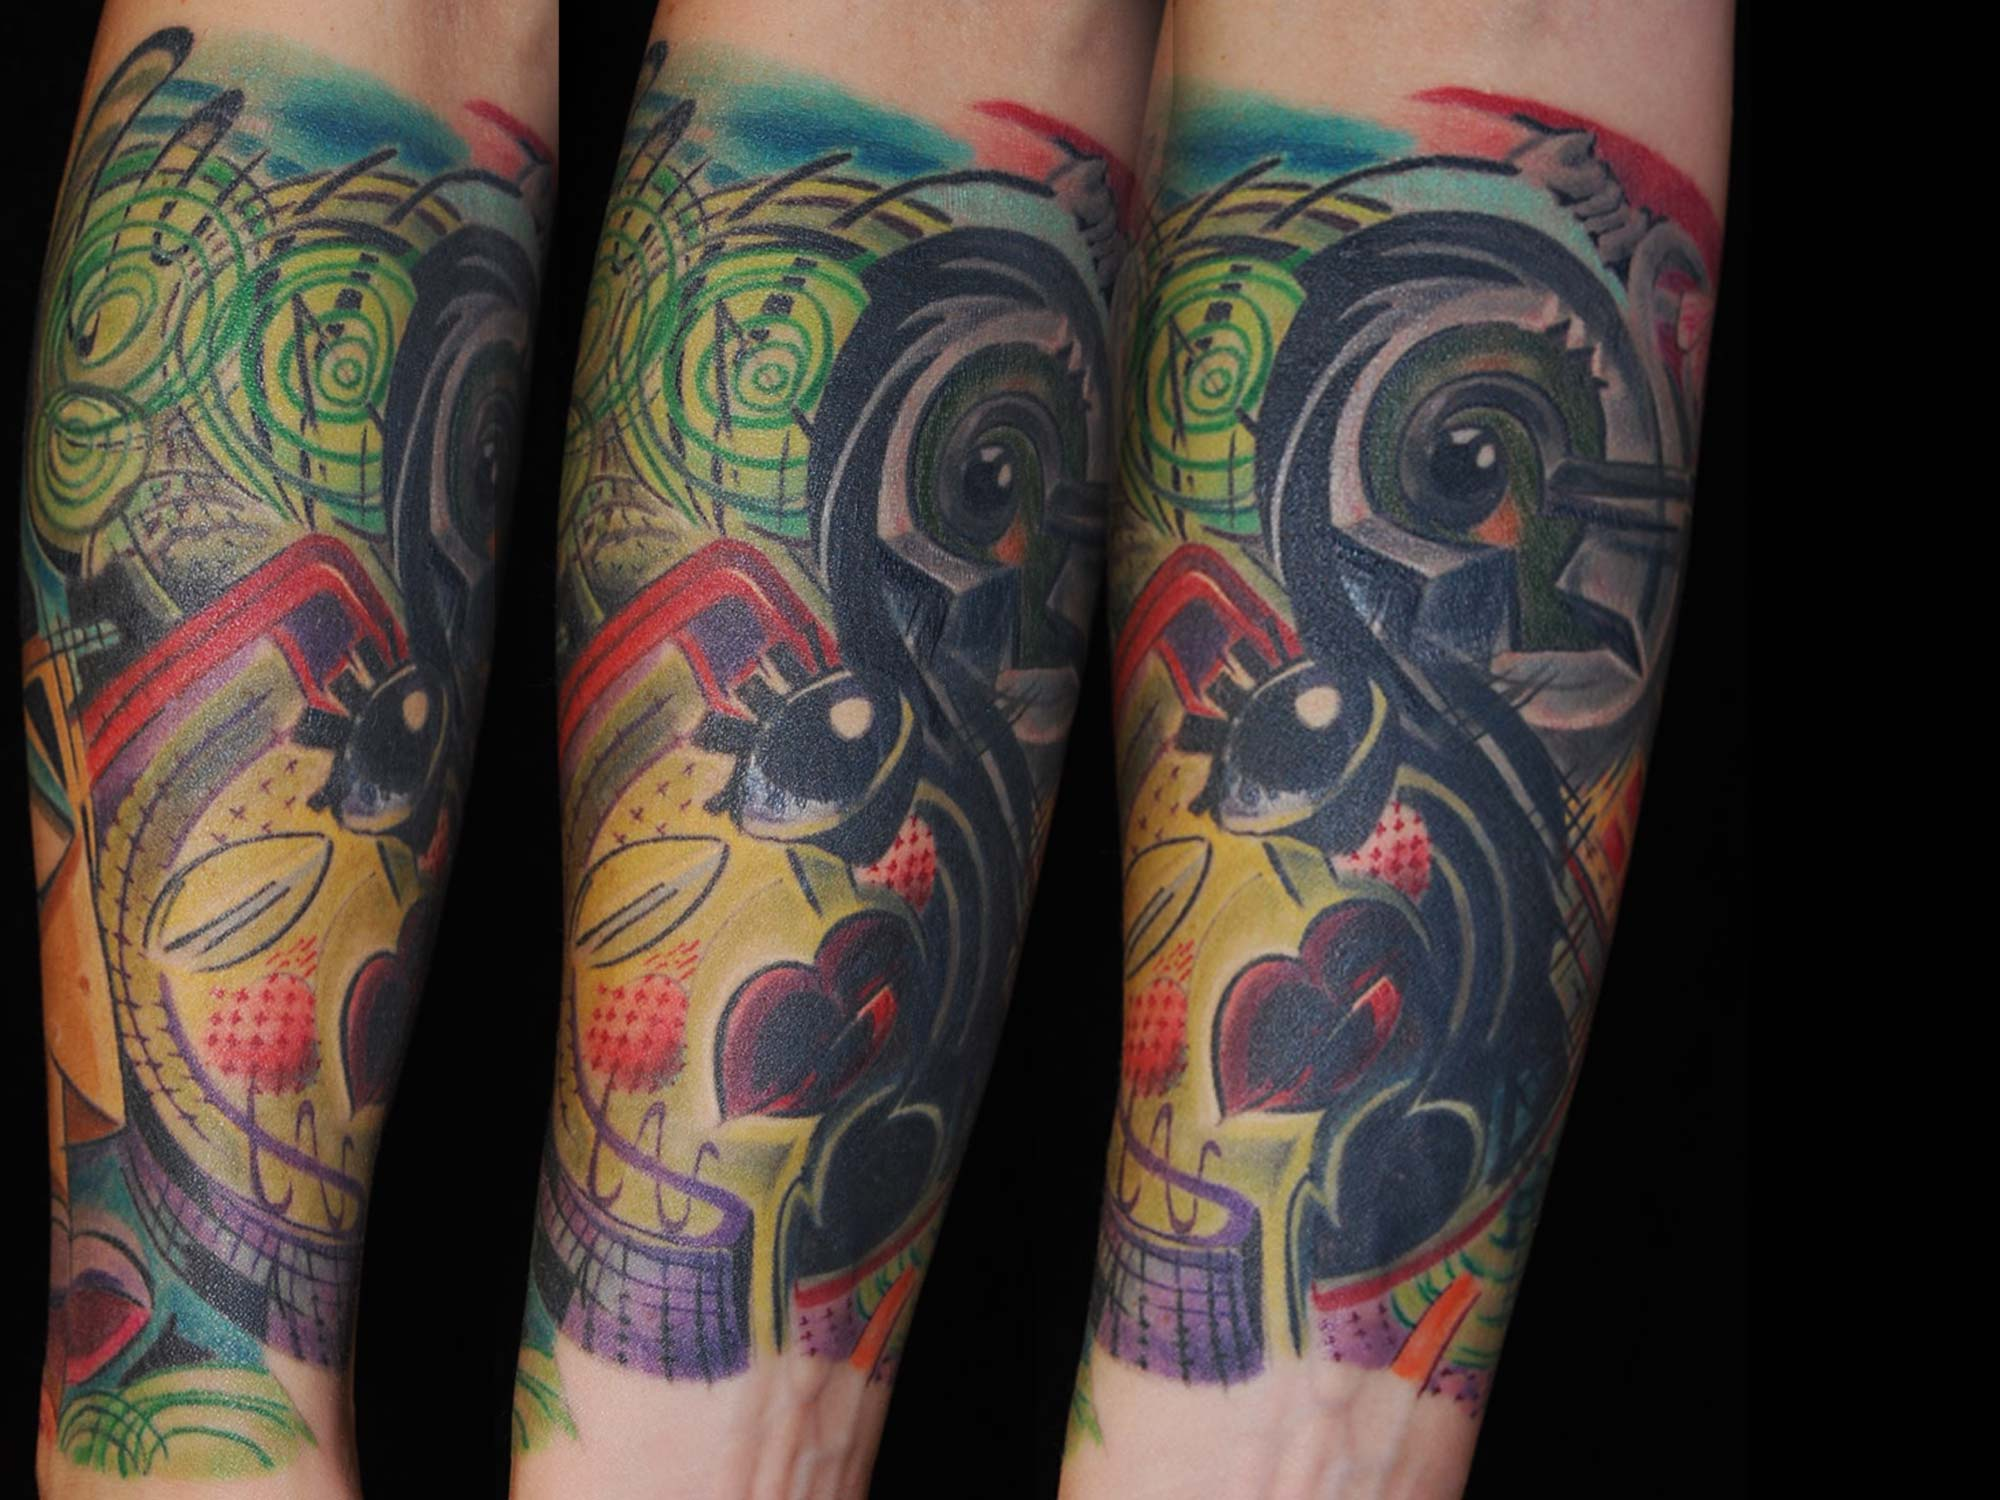 Hundertwasser-picasso-cover-up-raul-shit-for-life-tattoo-hits-for-life-tattoo-muenchen-taufkirchen-danach-2